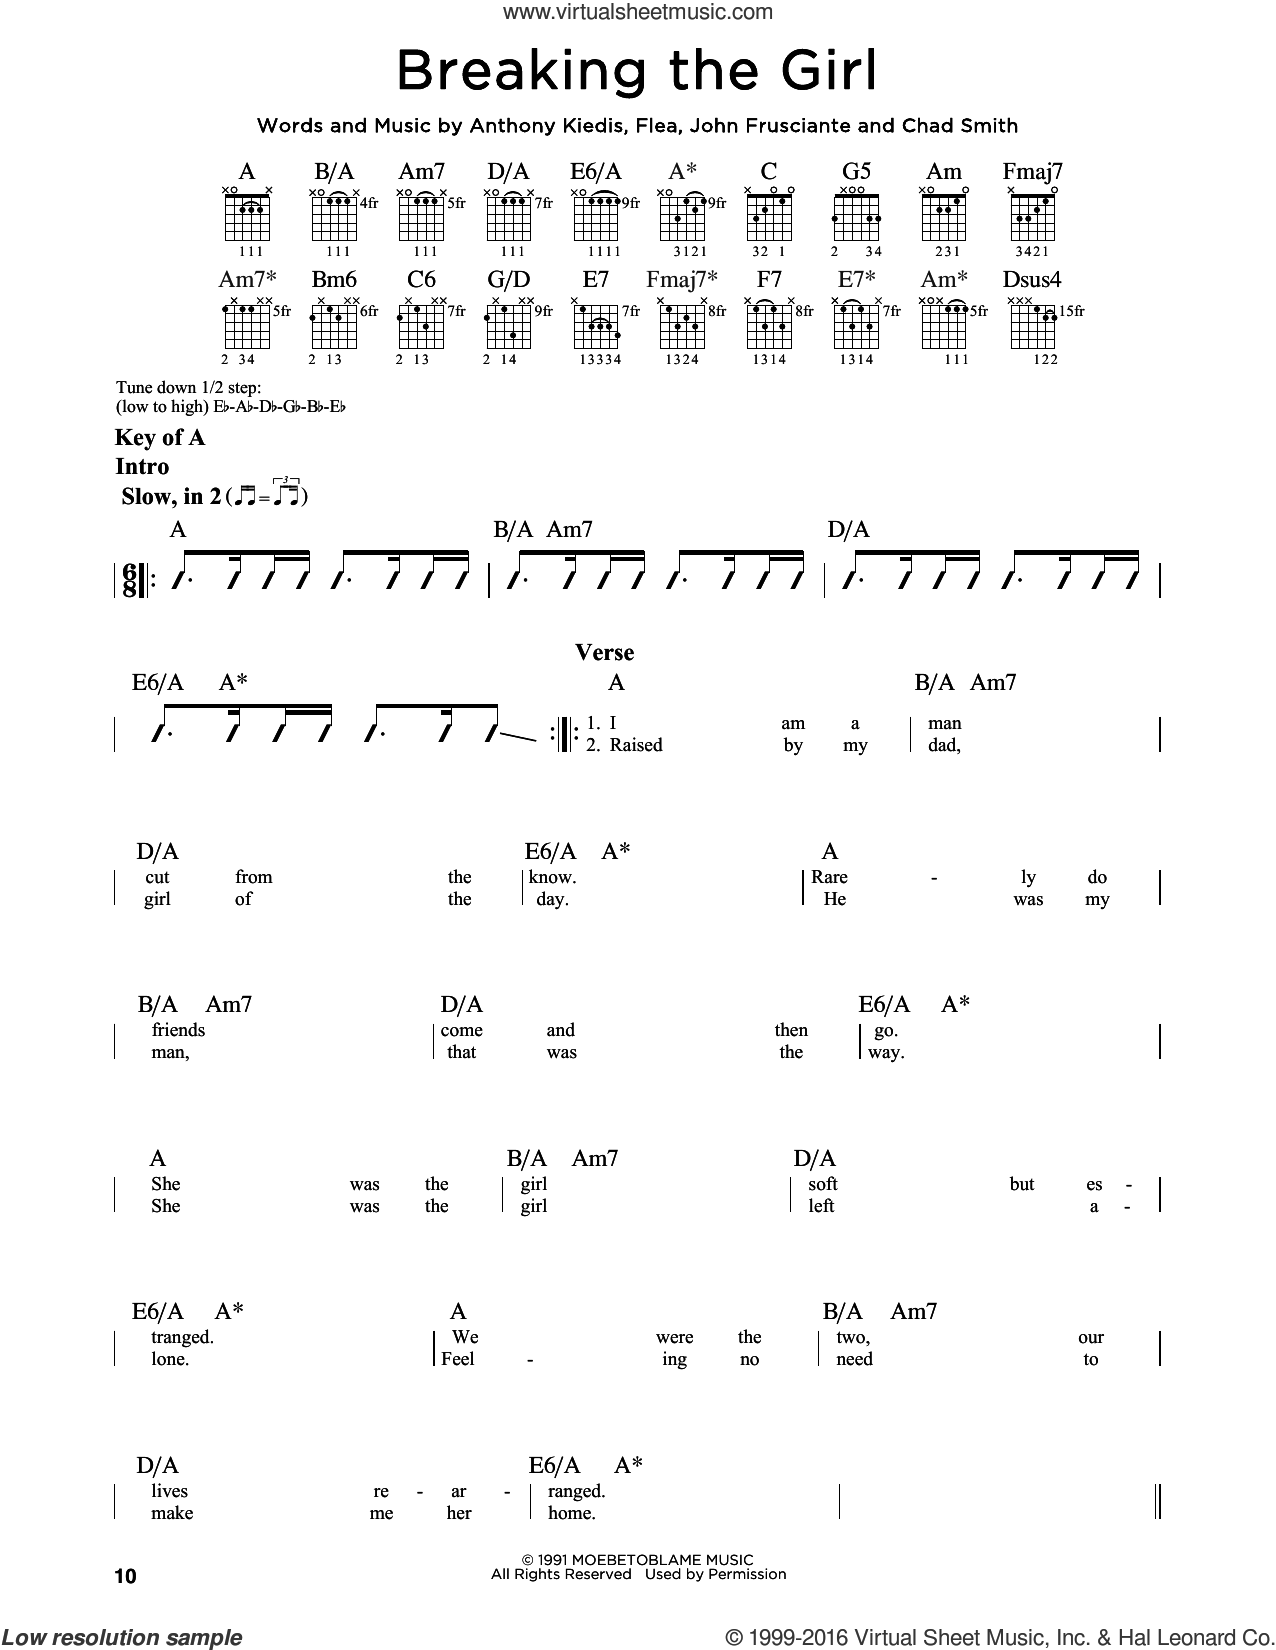 Breaking The Girl sheet music for guitar solo (lead sheet) by Red Hot Chili Peppers, Anthony Kiedis, Chad Smith, Flea and John Frusciante, intermediate guitar (lead sheet)